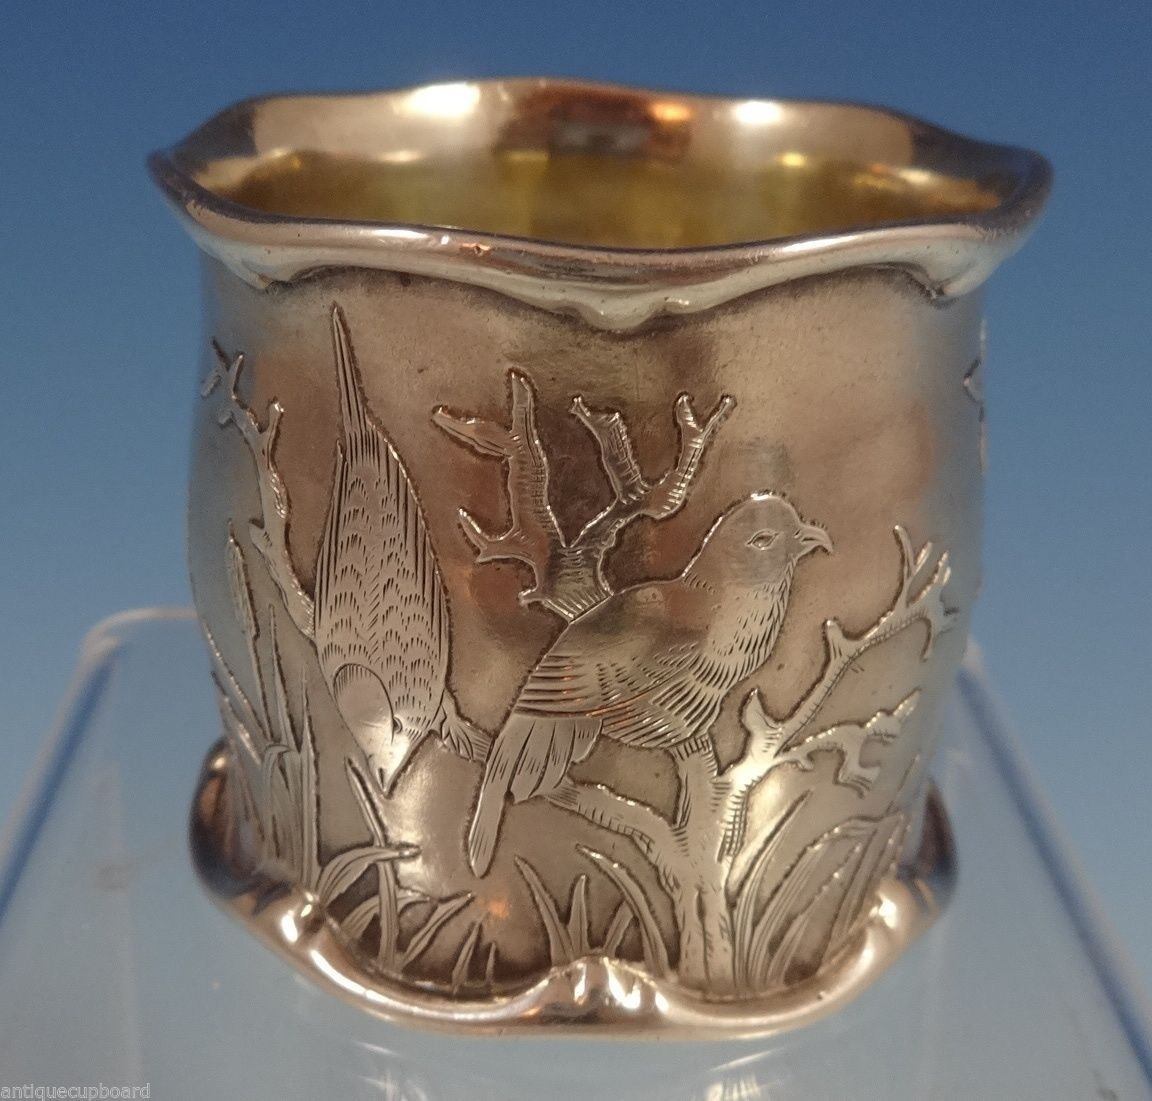 American sterling silver acid-etched napkin ring with design of birds and  branches, c1880's - American Sterling Silver Acid-etched Napkin Ring With Design Of